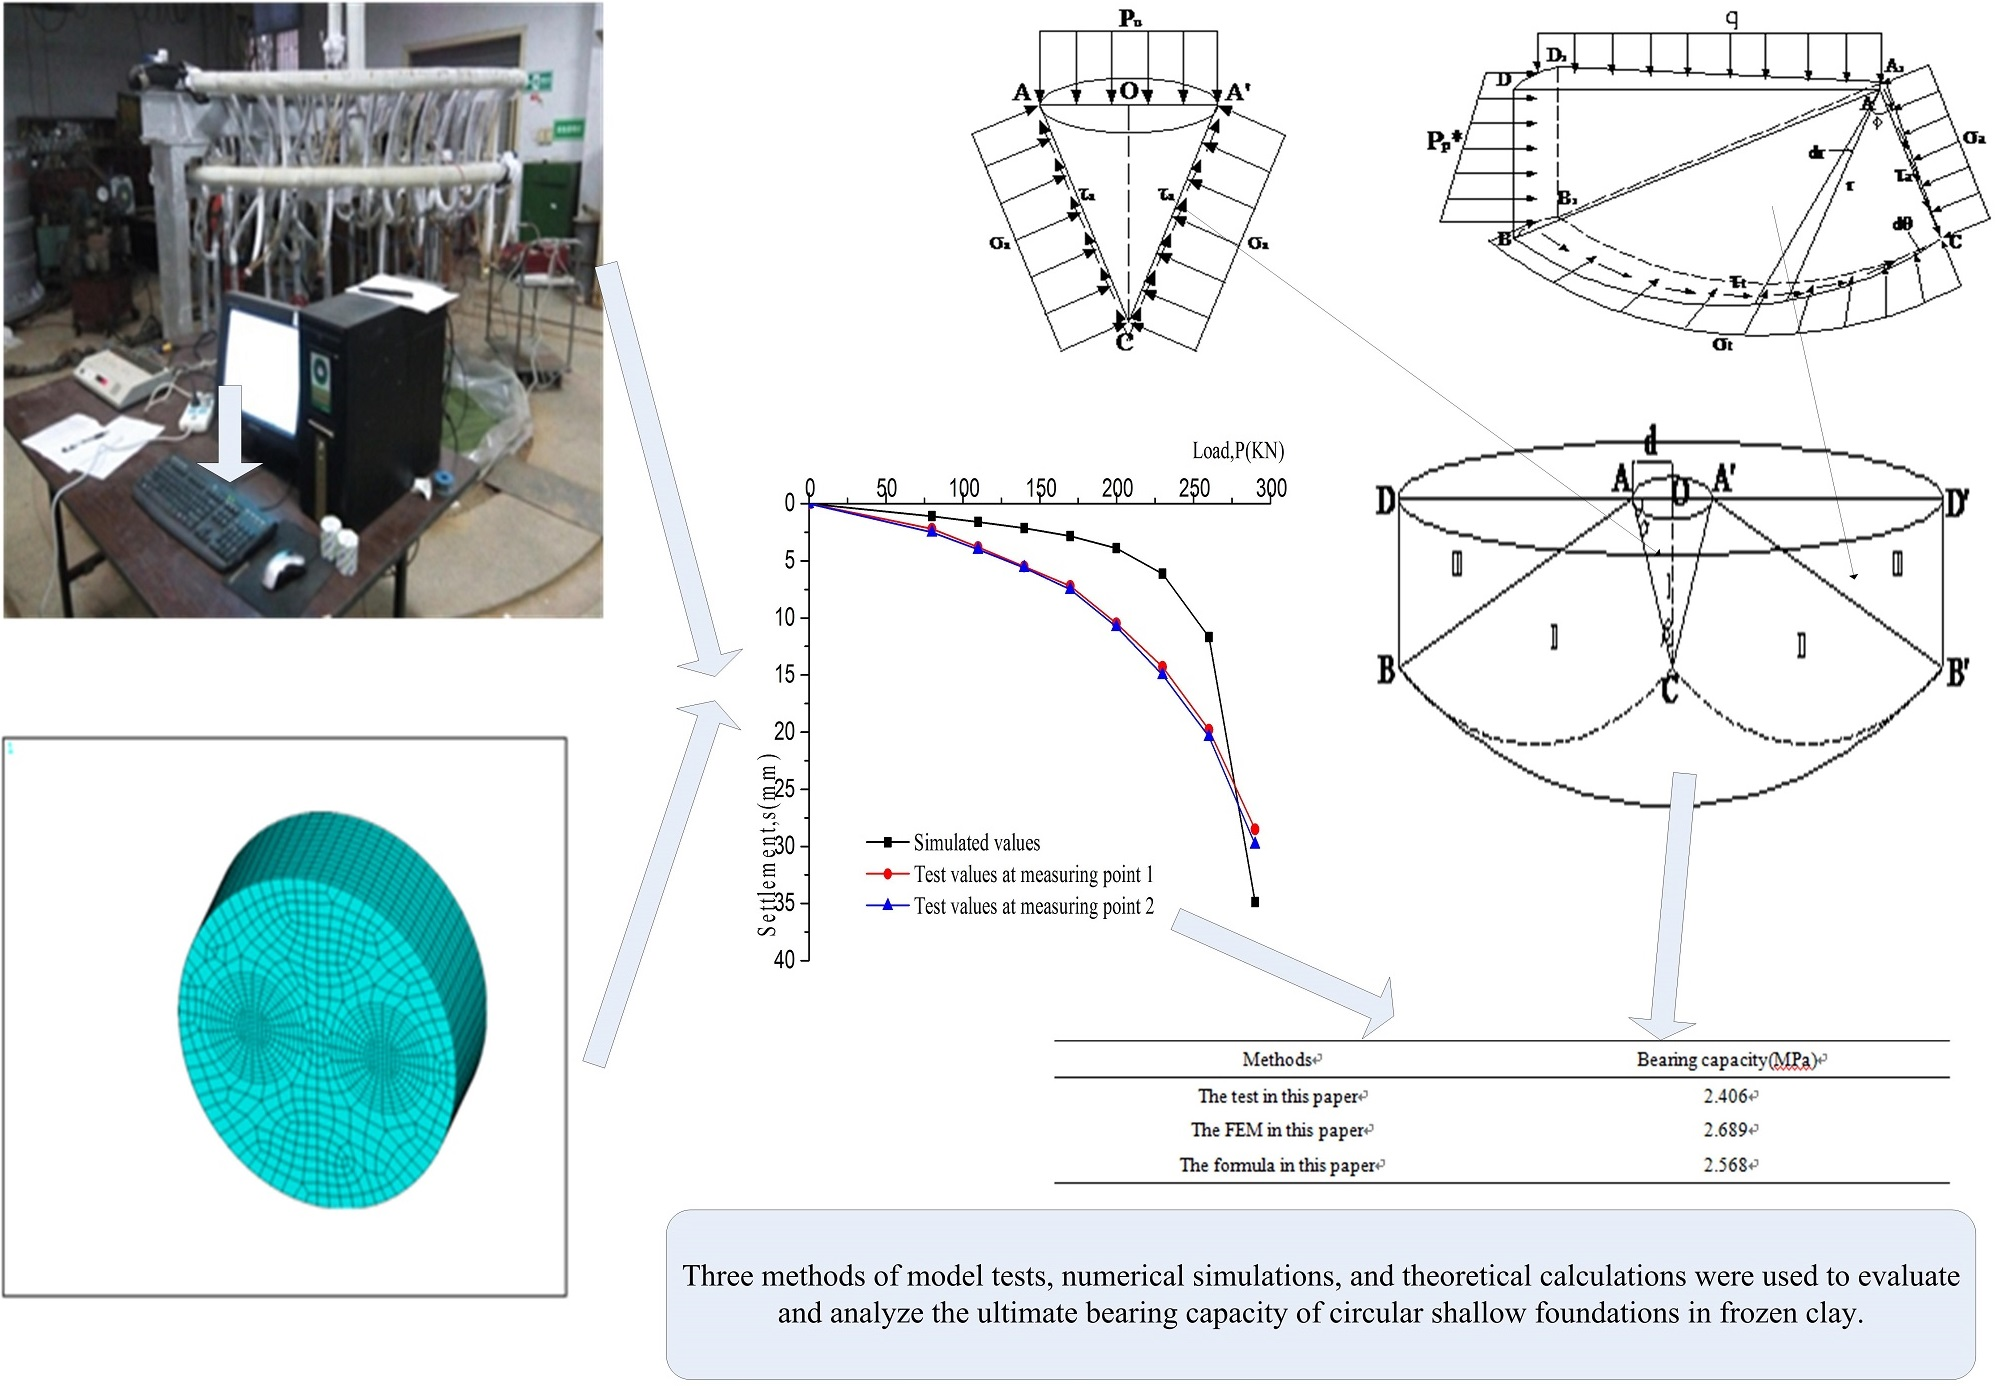 Ultimate bearing capacity of circular shallow foundations in frozen clay